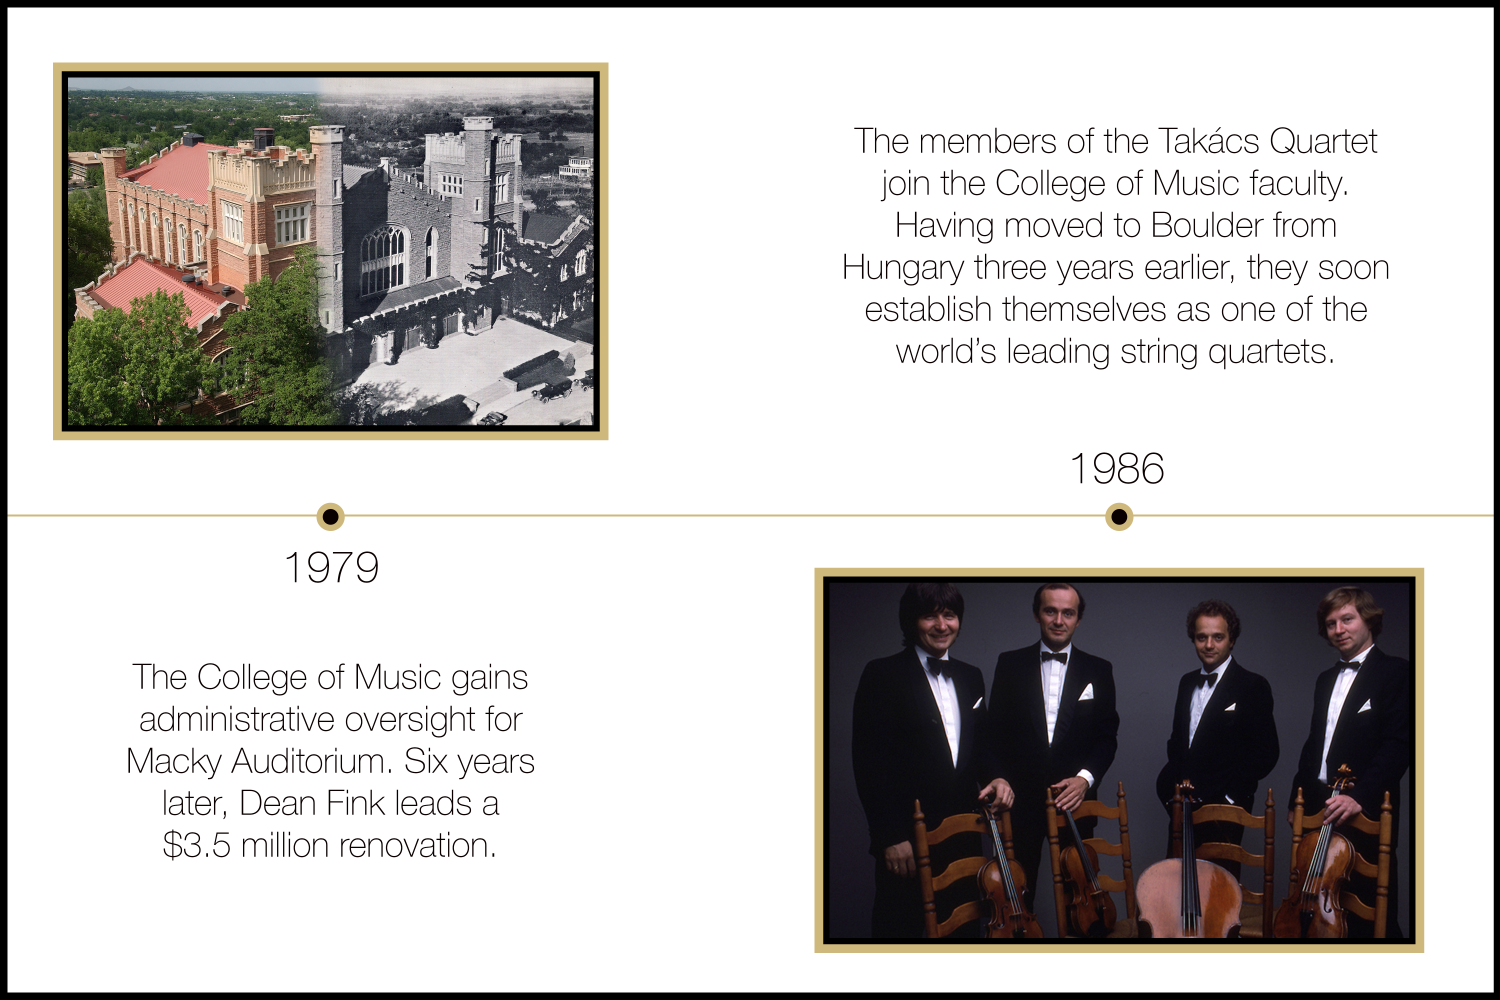 macky auditorium and the takacs quartet 1979-1986